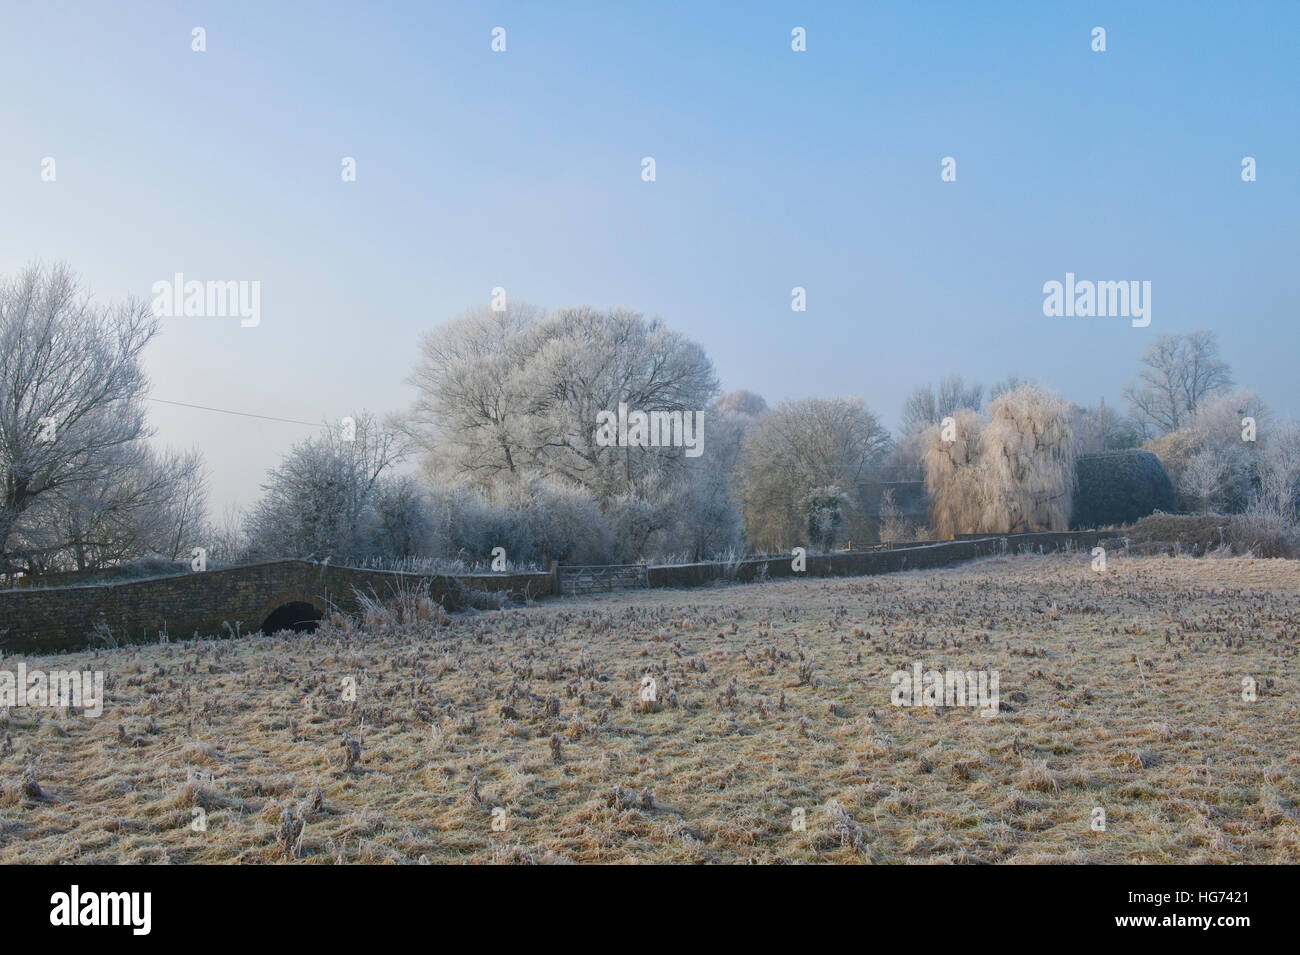 Looking towards The Mill house with trees covered in a hoar frost in winter. Somerton, North Oxfordshire, England - Stock Image